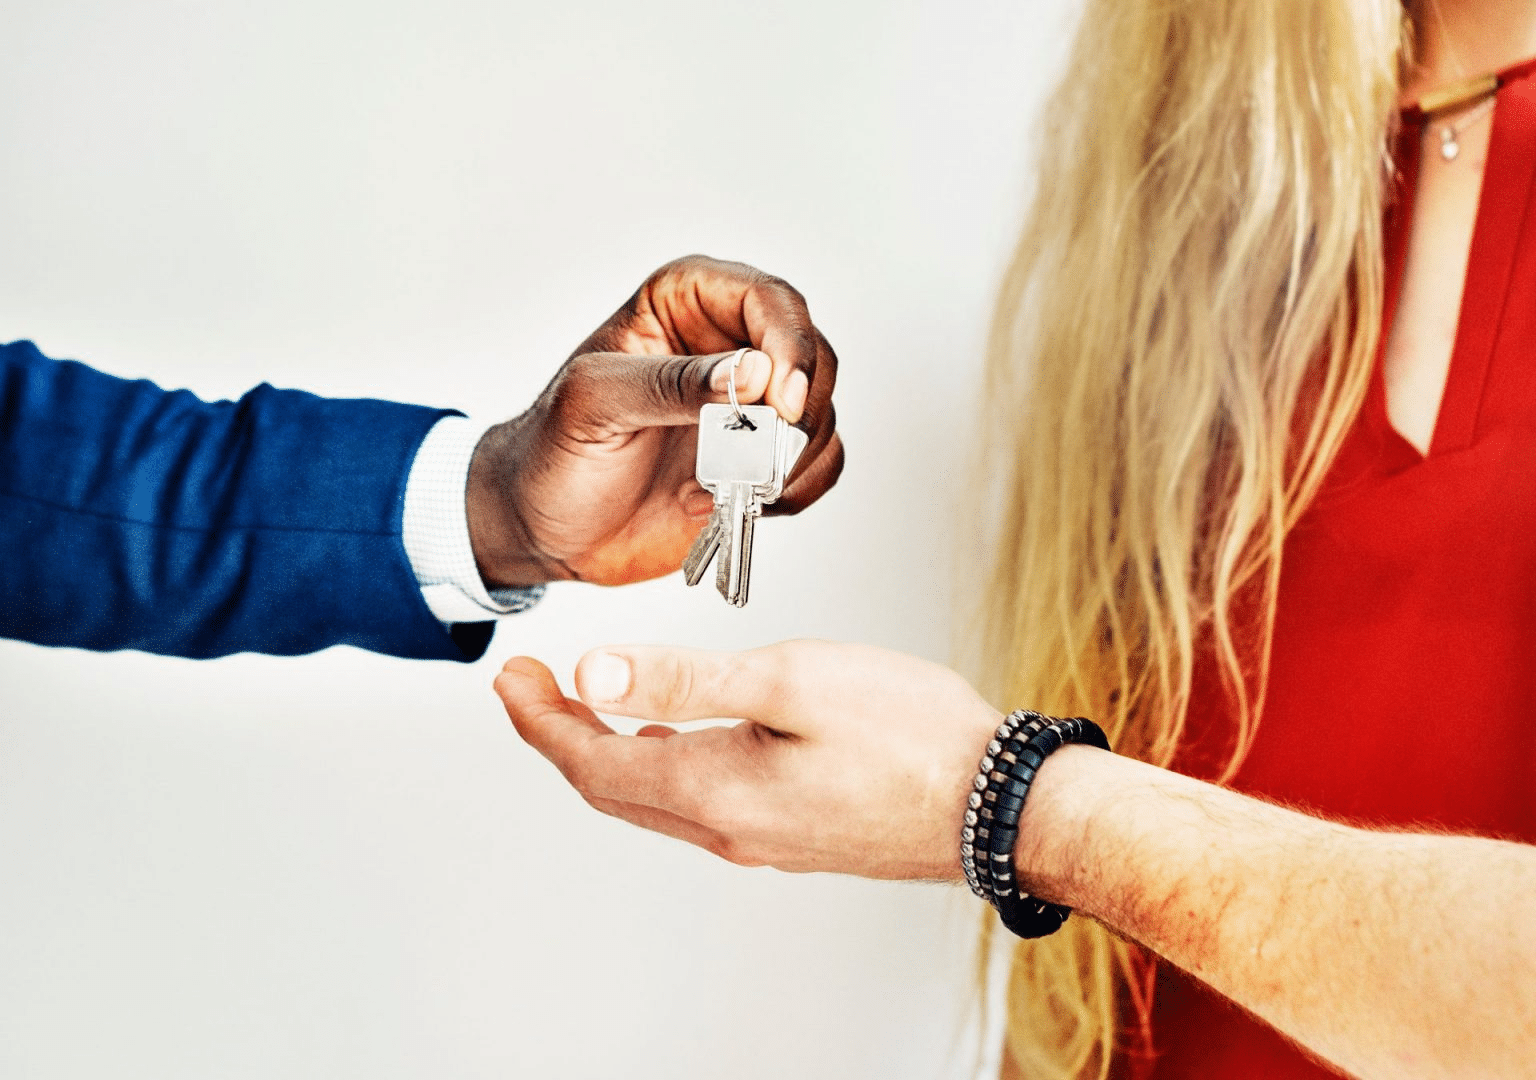 Picture of a black man wearing a shirt and jumper's hand handing over a set of keys with a white woman with blonde hair and a bracelet on